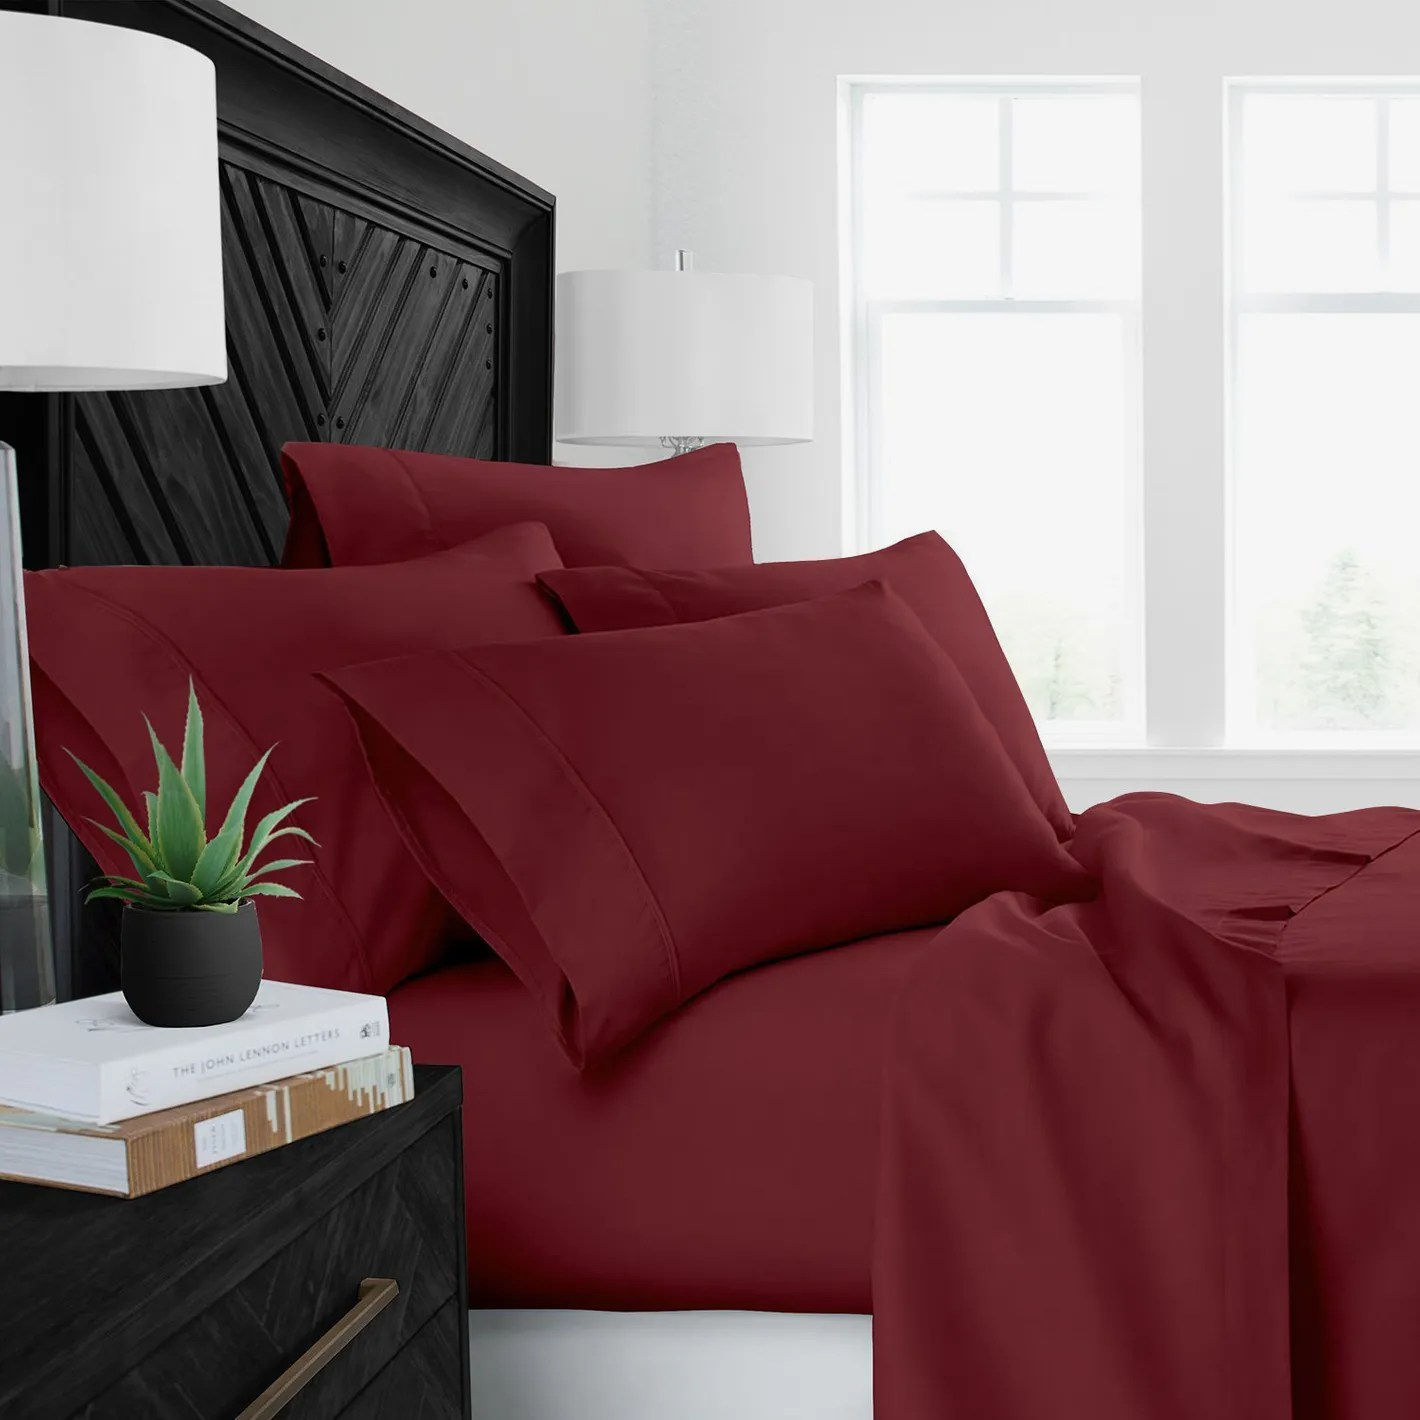 Best Sheets For Summer 31 Best Bed Sheets Egyptian Cotton Flannel Sheets 2019